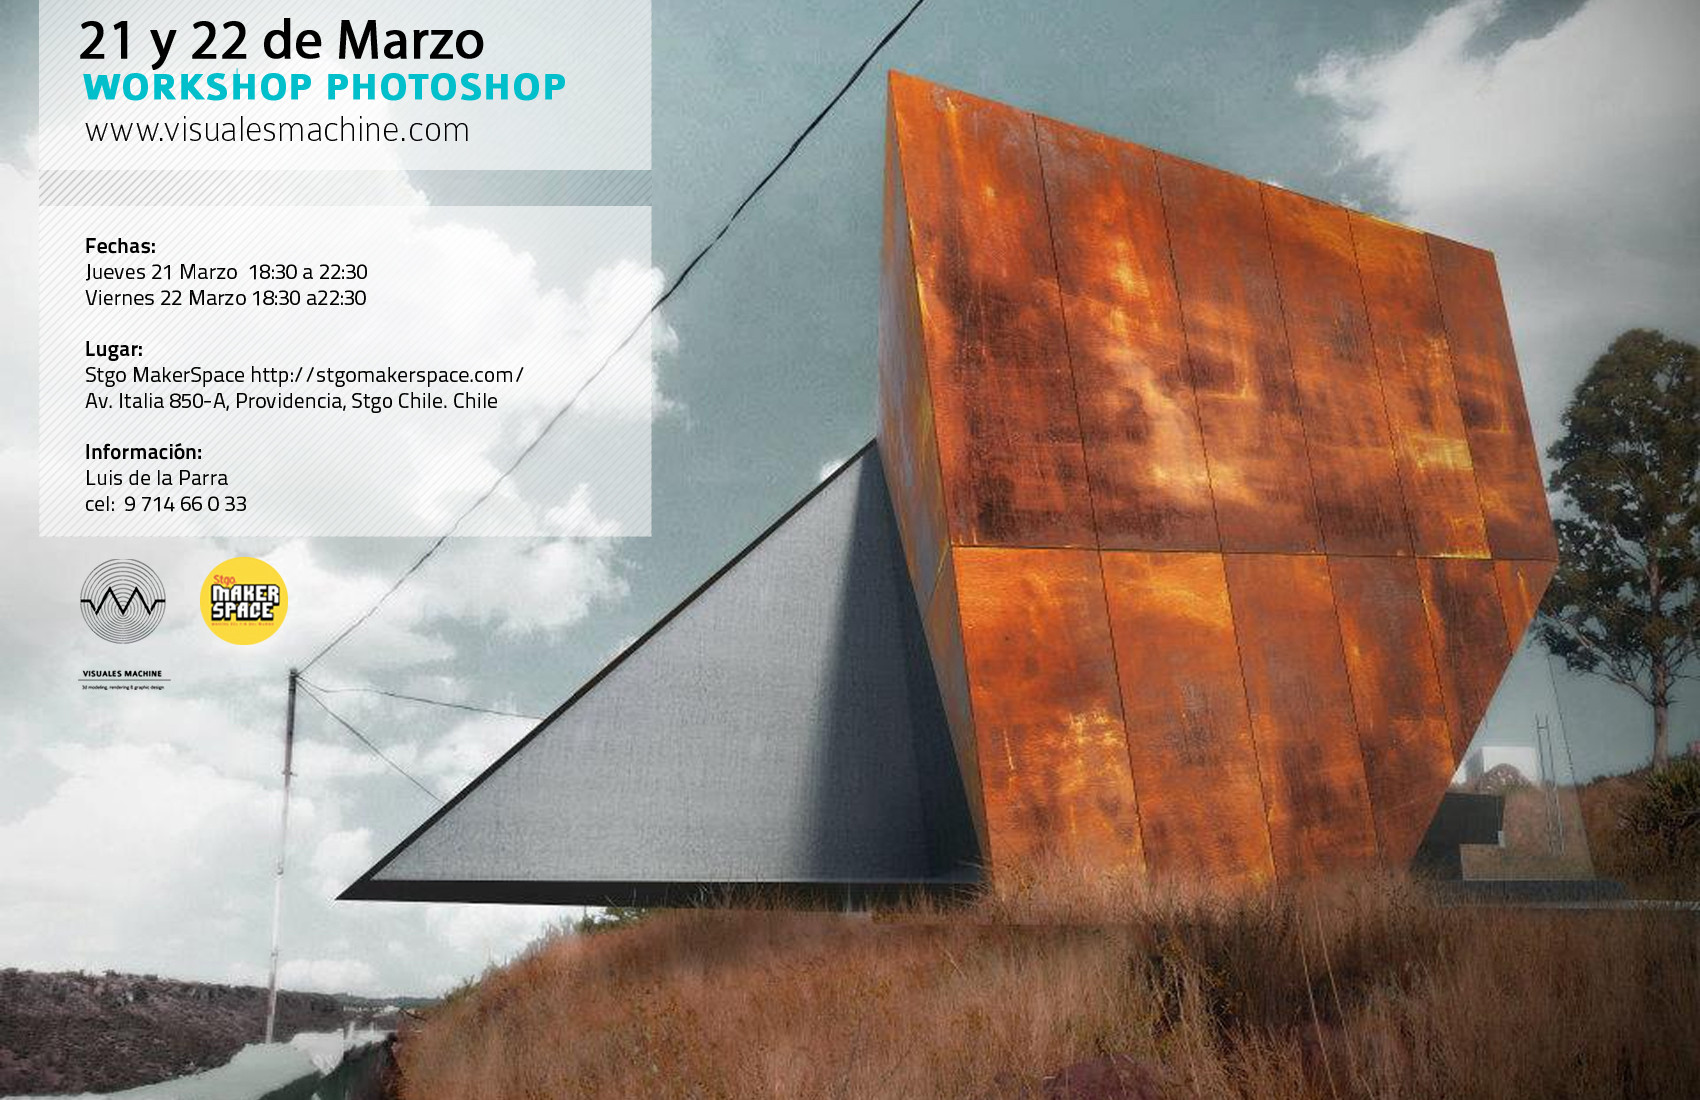 Workshop Photoshop en Santiago de Chile / Visuales Machine [¡Sorteamos un Cupo!]